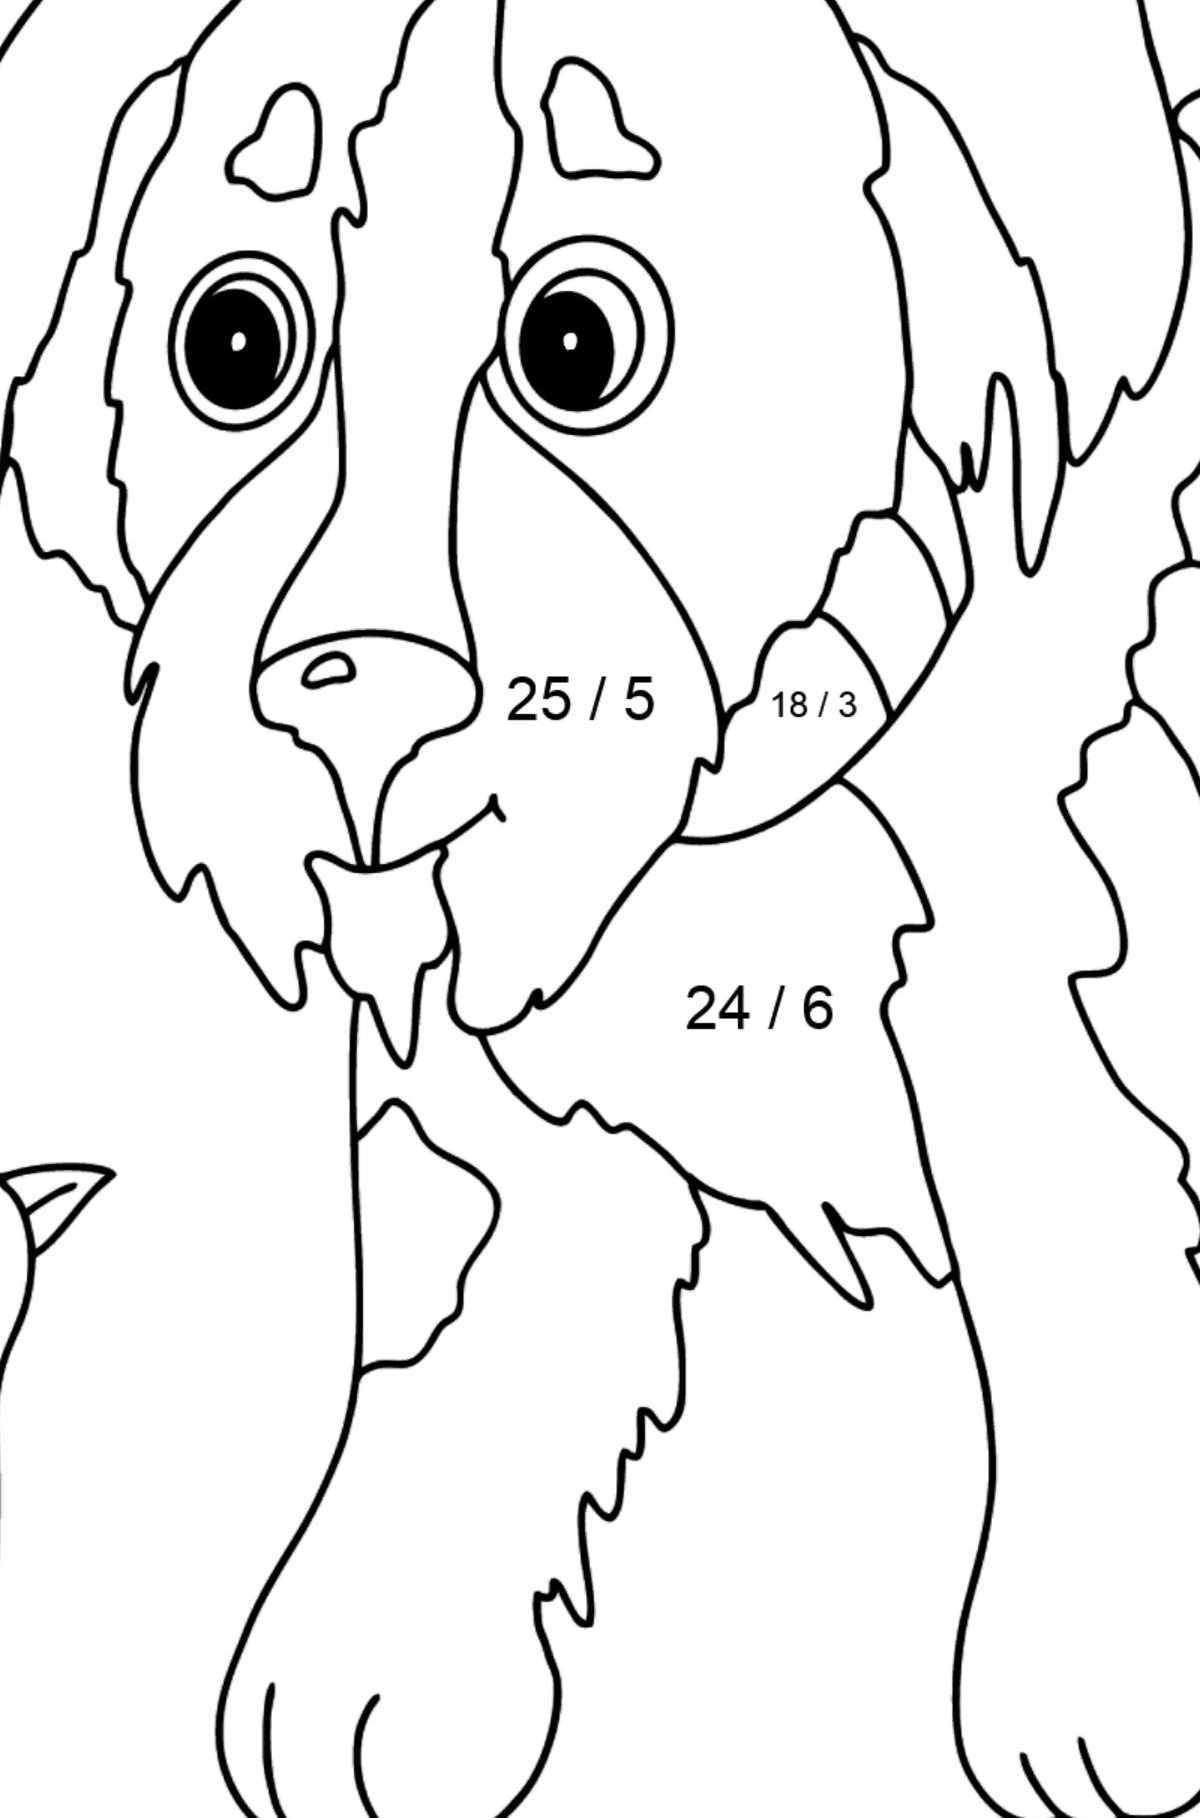 Coloring Page - A Dog is Talking to a Bird - Math Coloring - Division for Kids